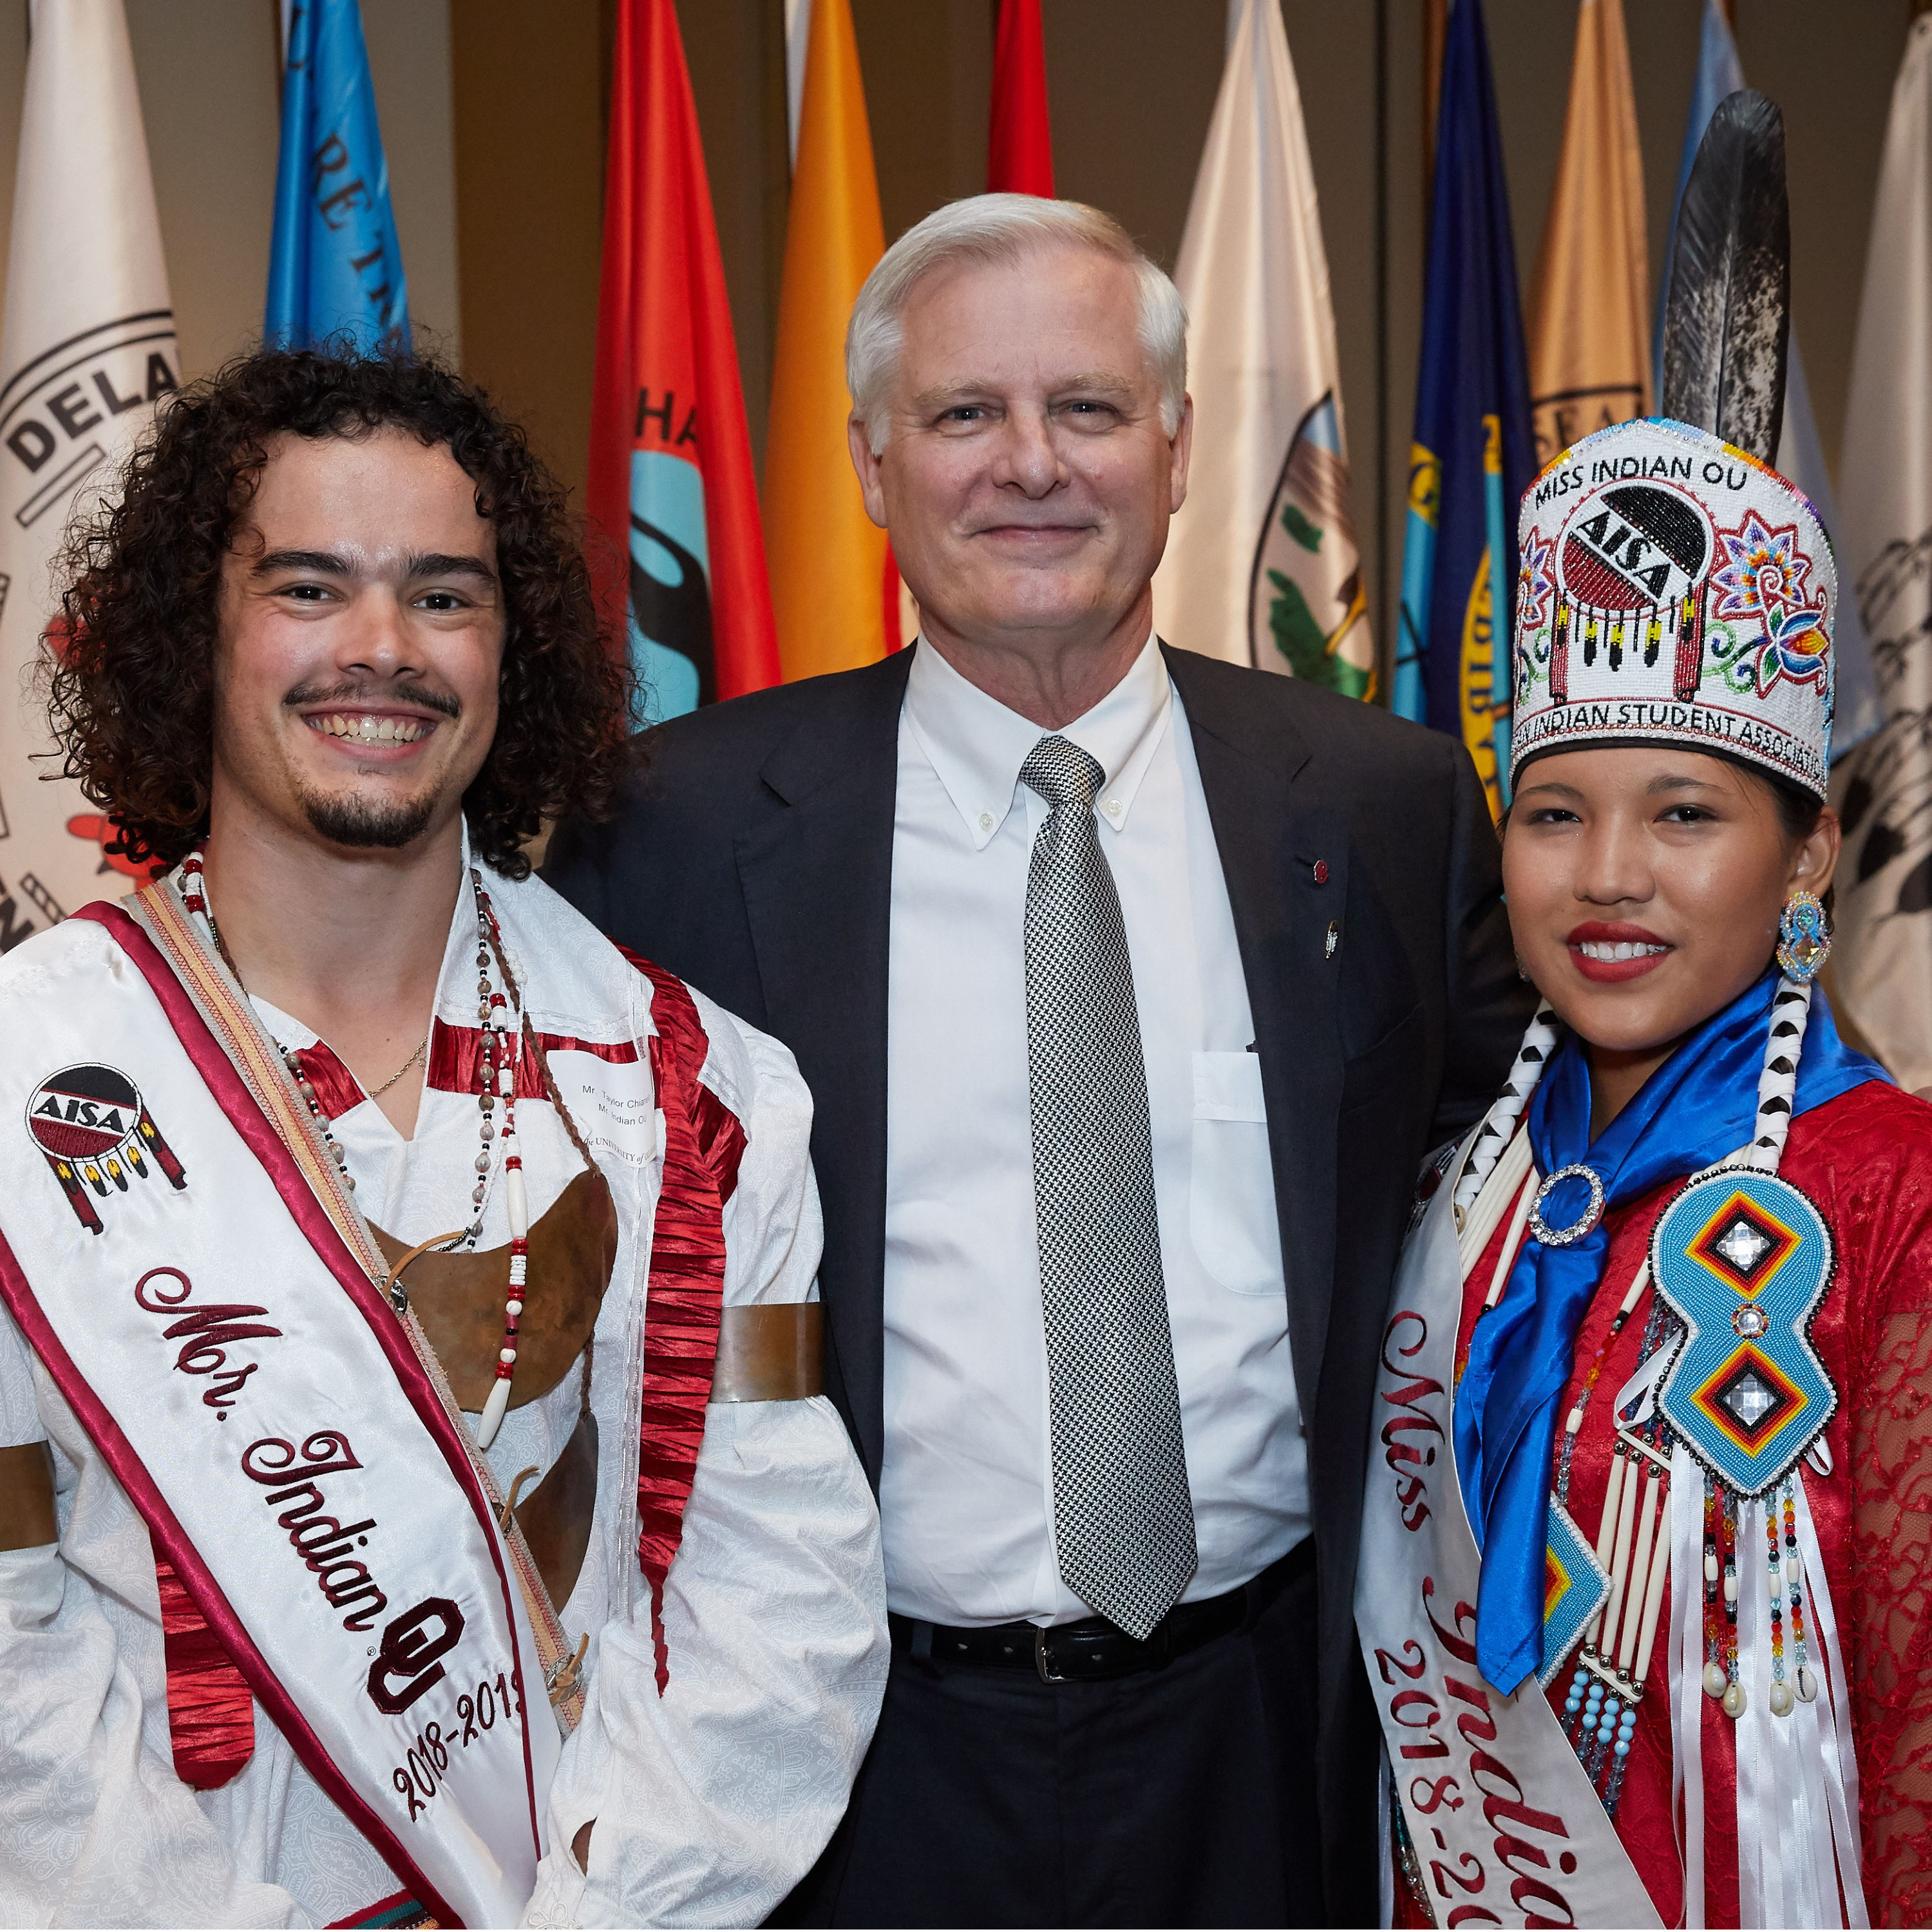 President Gallogly with Mr. and Miss Indian OU